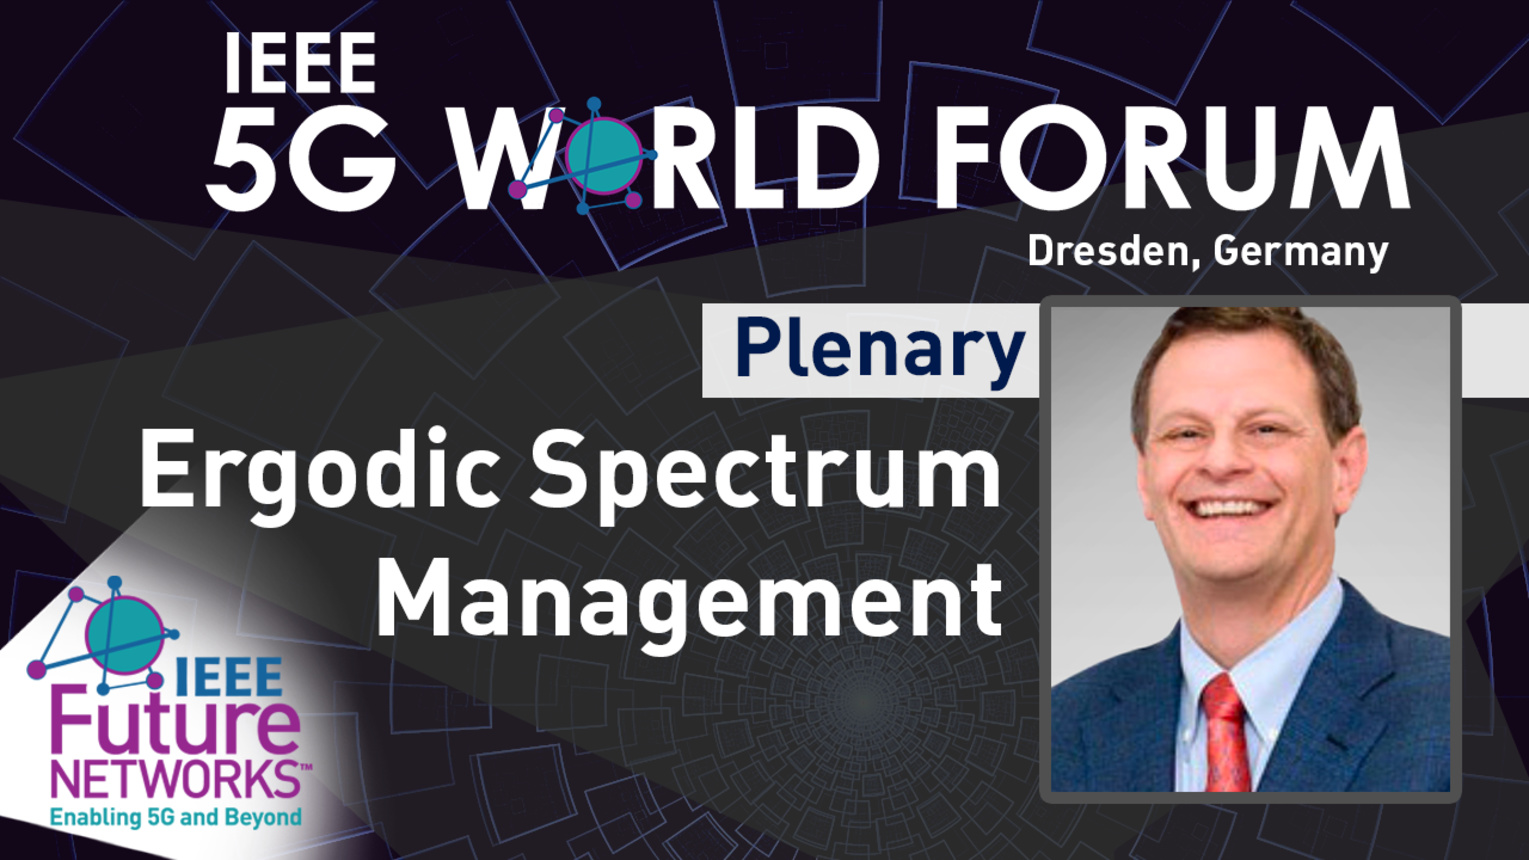 Ergodic Spectrum Management - John Cioffi - 5G World Forum Dresden, 2019